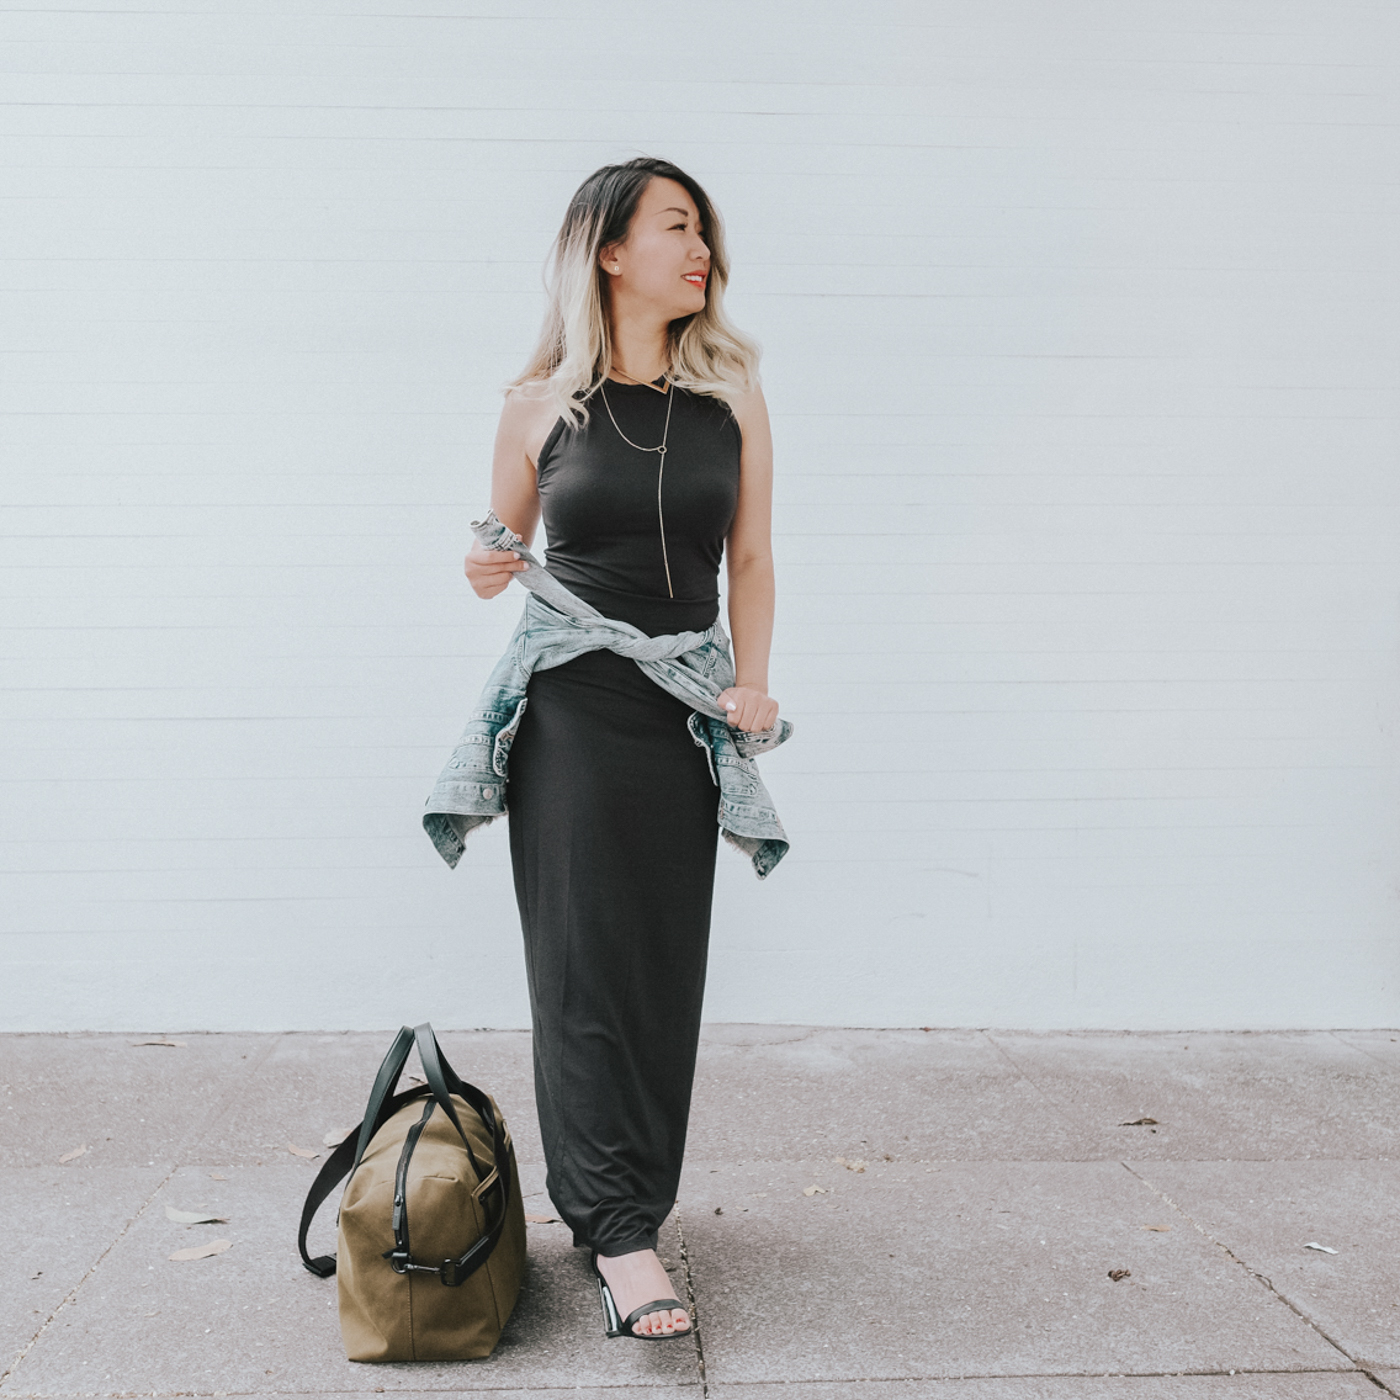 Grana     •  Pima Racerfront Maxi Dress    Cost:  $30  Times Worn as of 3/2019:  30  Cost/Times Worn:  $1  Cost/30 Wears:  $1